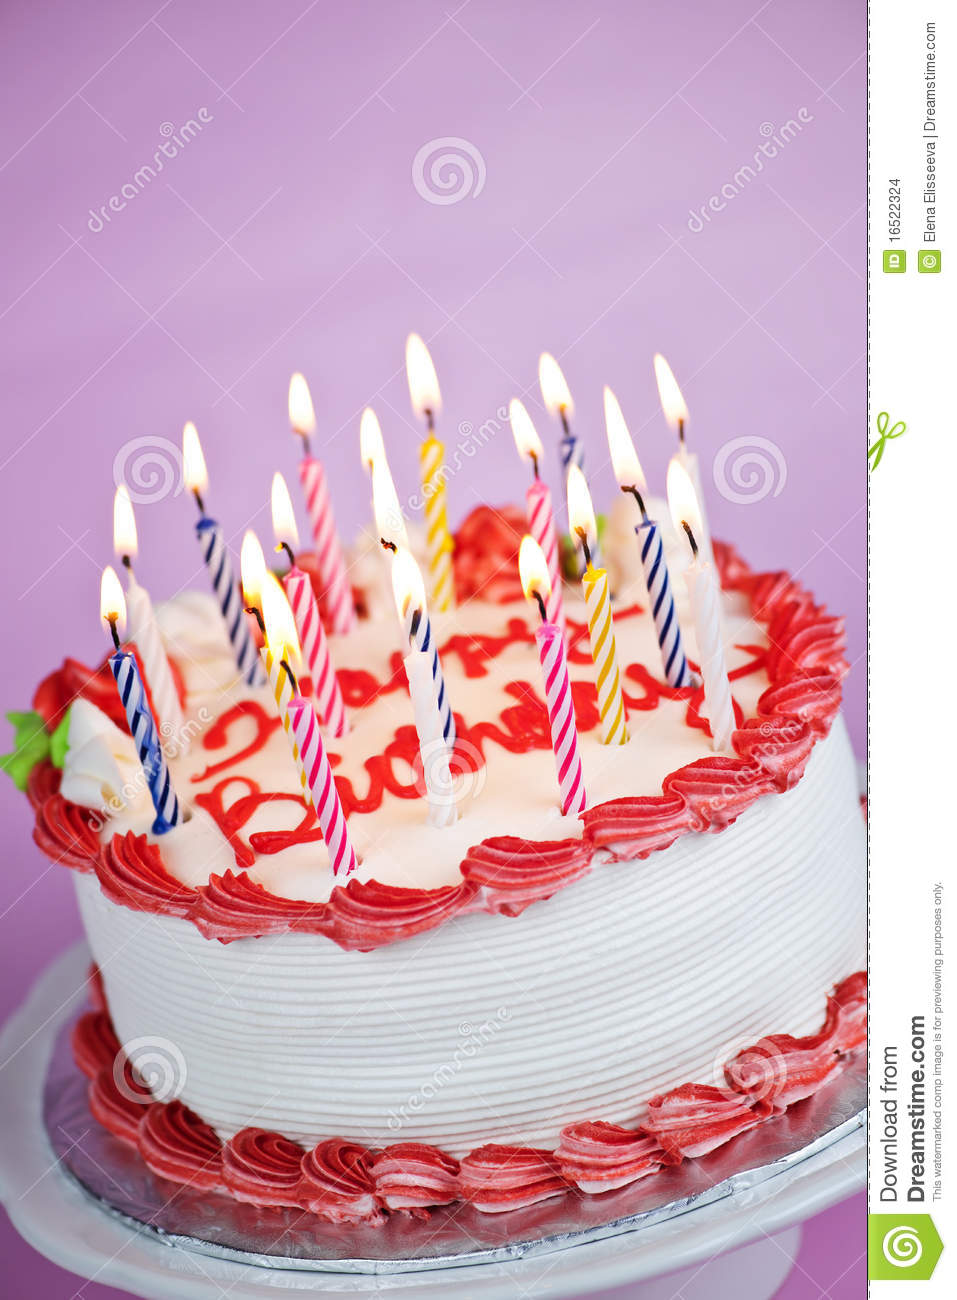 Birthday Cake With Lit Candles Images : Birthday Cake With Lit Candles Stock Images - Image: 16522324